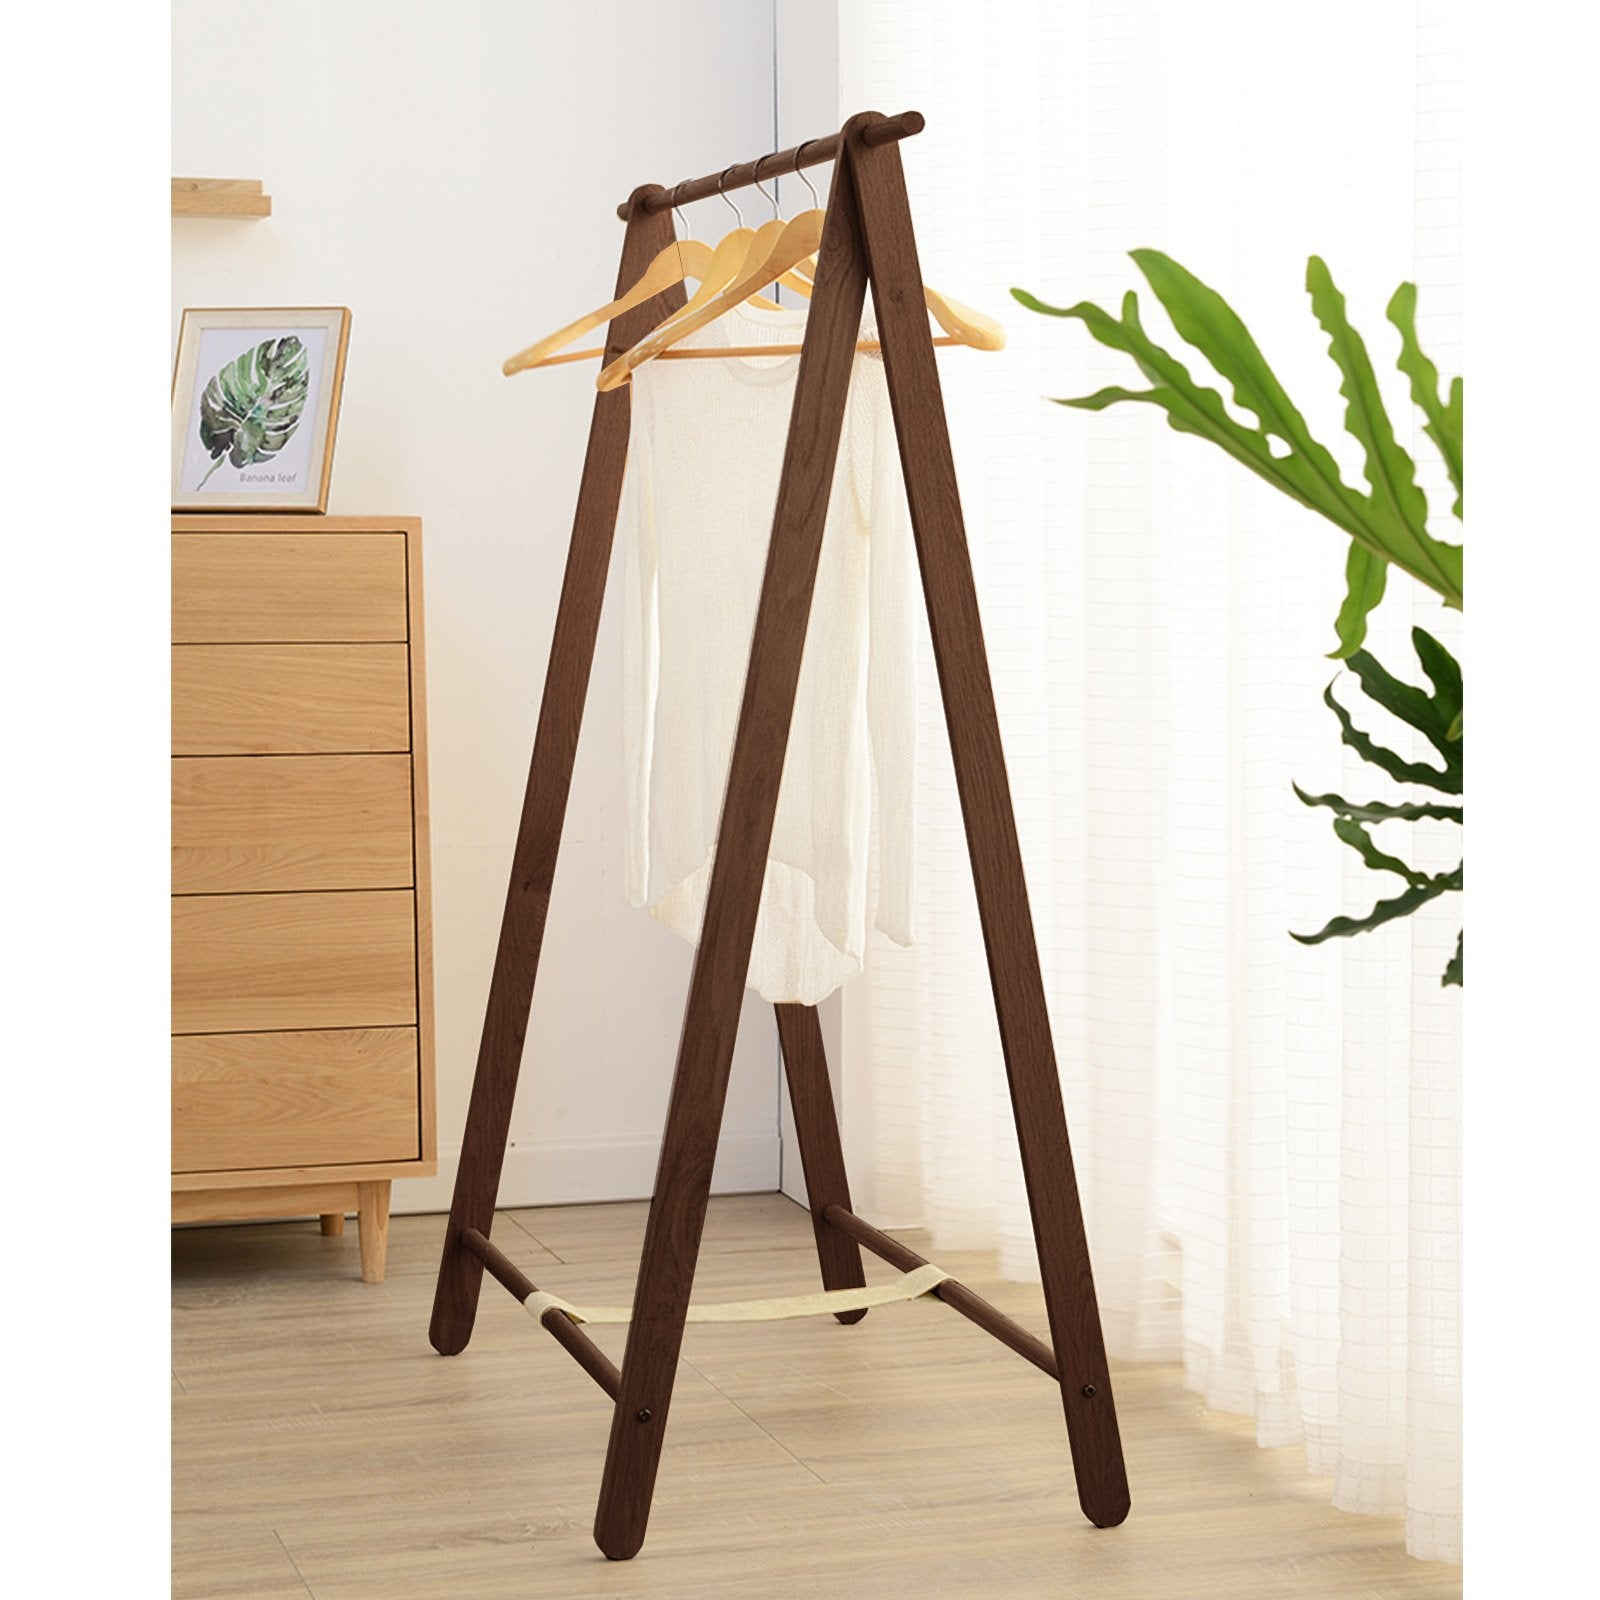 Solid Wood Hanger CH-025-W -  شماعات الخشب الصلب - Shop Online Furniture and Home Decor Store in Dubai, UAE at ebarza